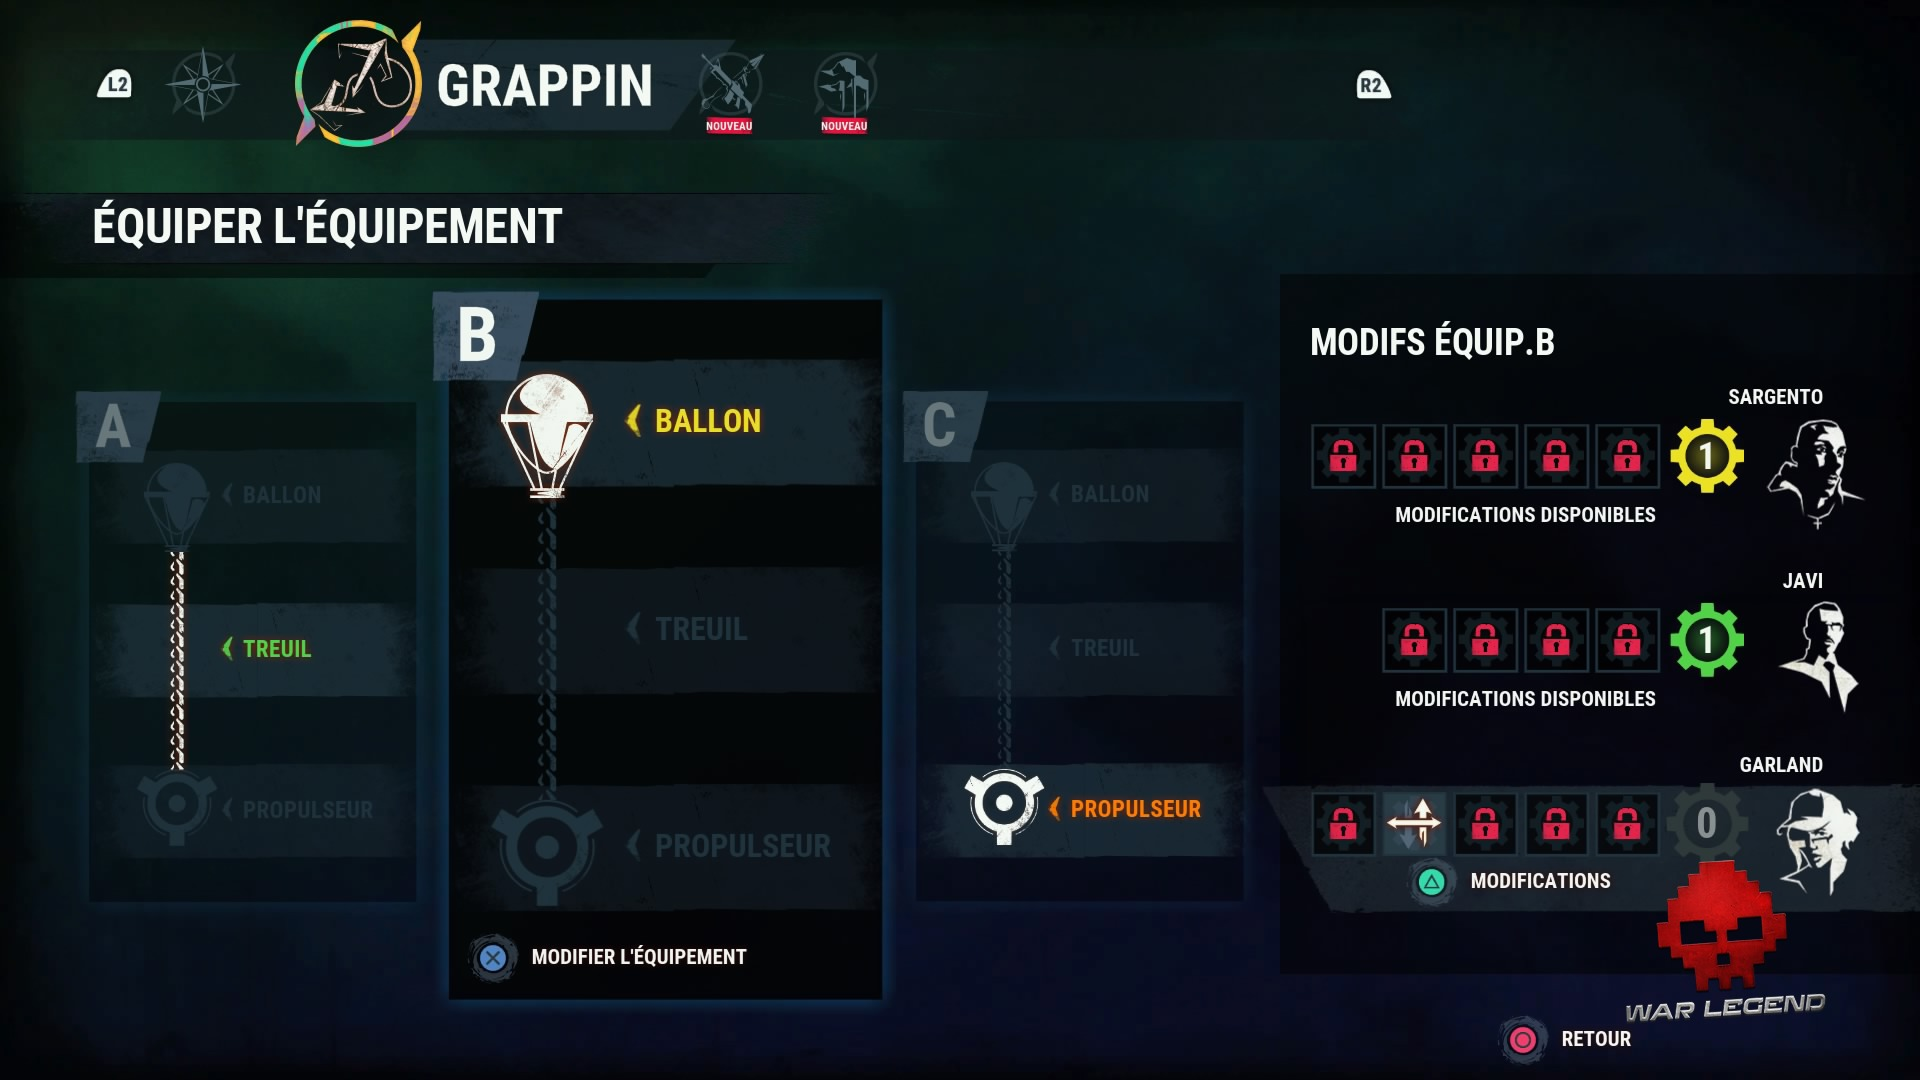 Menu des modifications du grappin